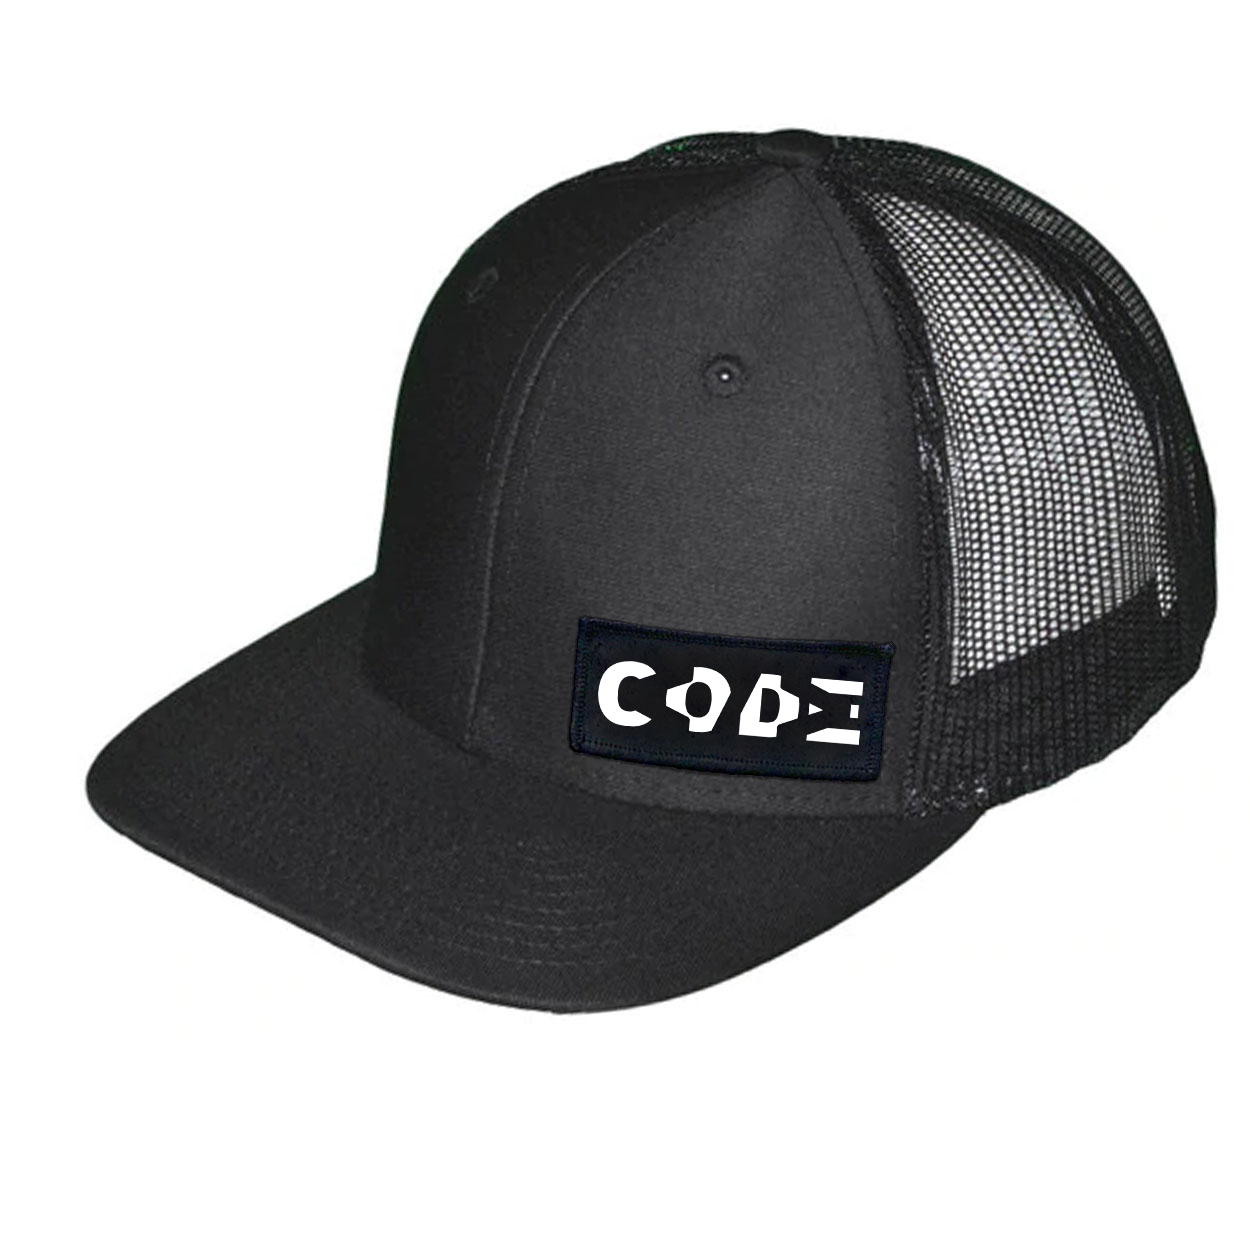 Code Tag Logo Night Out Woven Patch Snapback Trucker Hat Black (White Logo)